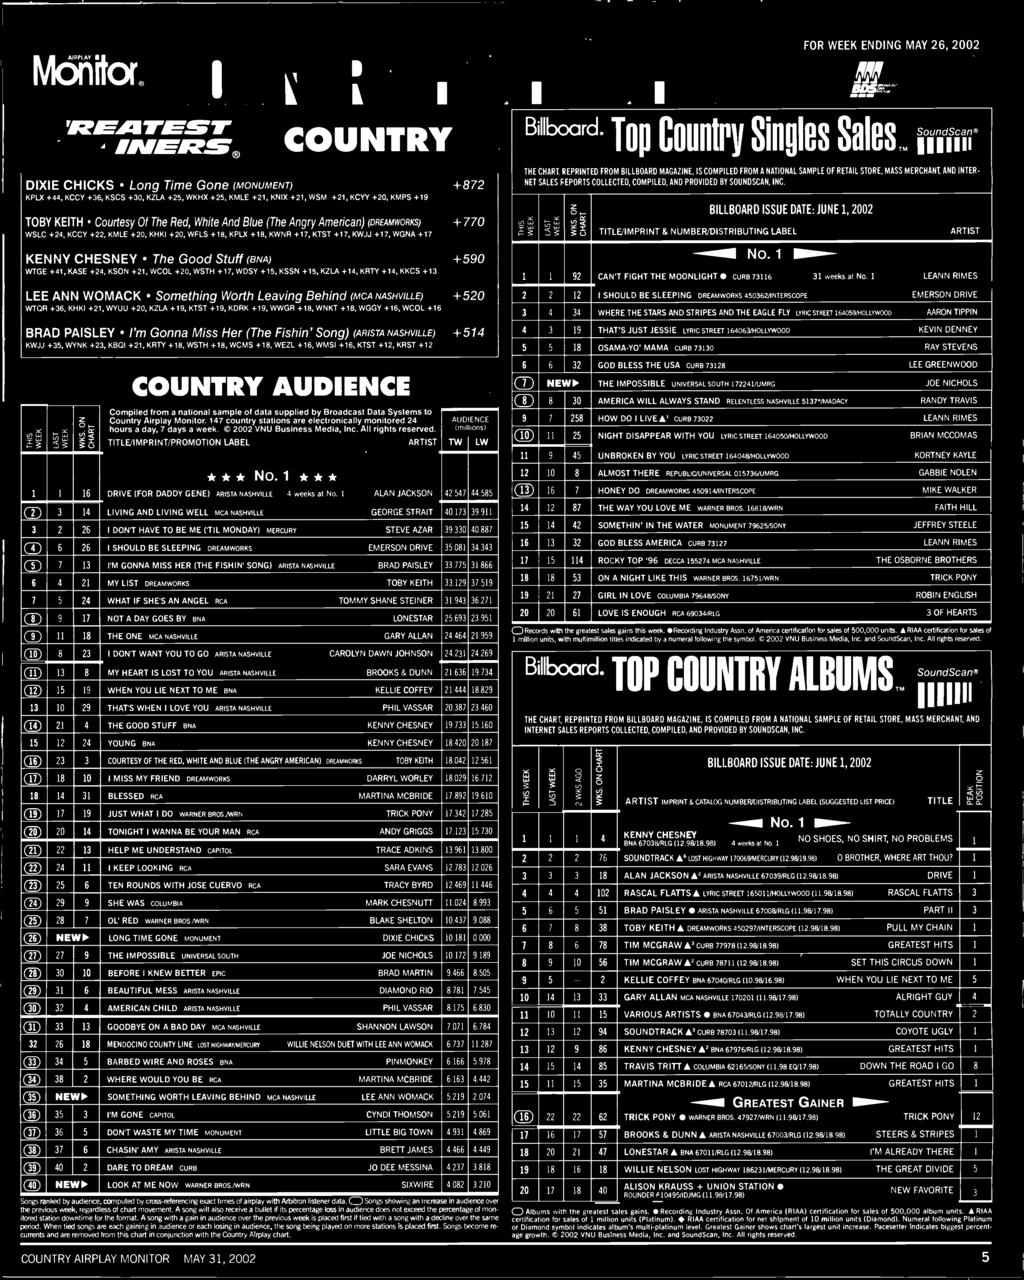 K0 +, KRTY +8, WSTH +8, WCMS +8, WEZL +, WMS +, KTST +, KRST + V, L., L' ',c Li. L' '. cc 5 COUNTRY AUDENCE Compiled from a national sample of data supplied by Broadcast Data Systems to Country Airplay Monitor.